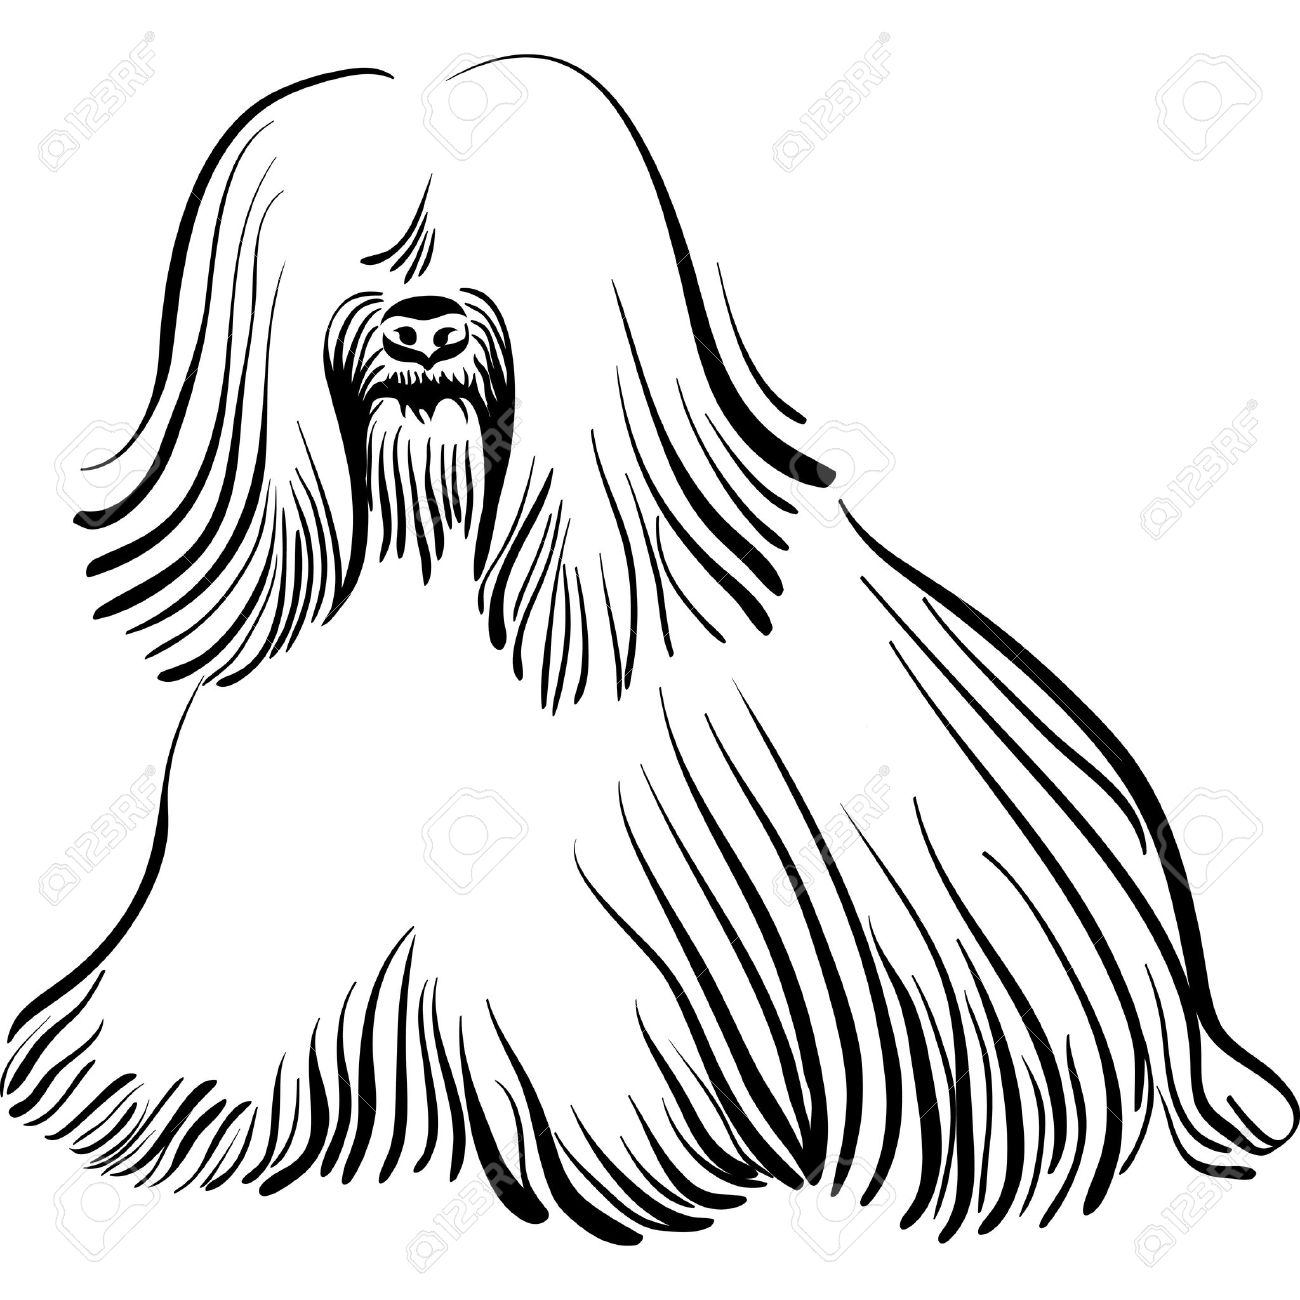 Sketch Of The Dog Tibetan Terrier Breed Sitting Royalty Free.